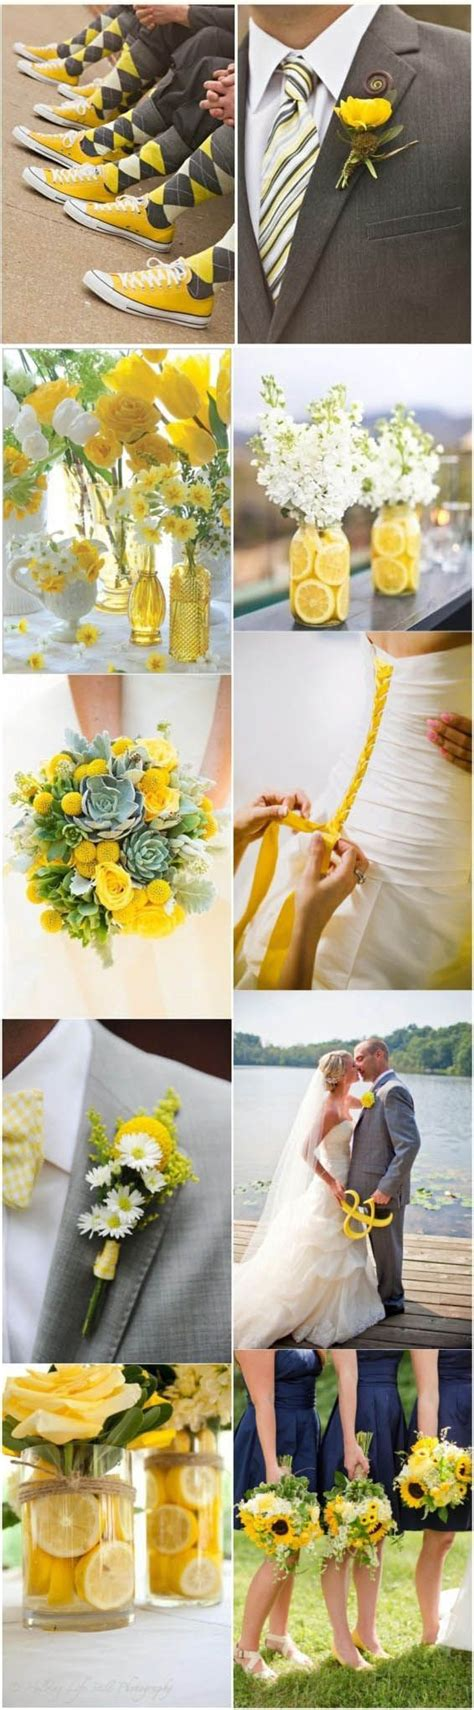 spring decorating ideas 2017 best 25 yellow white wedding ideas on pinterest stock